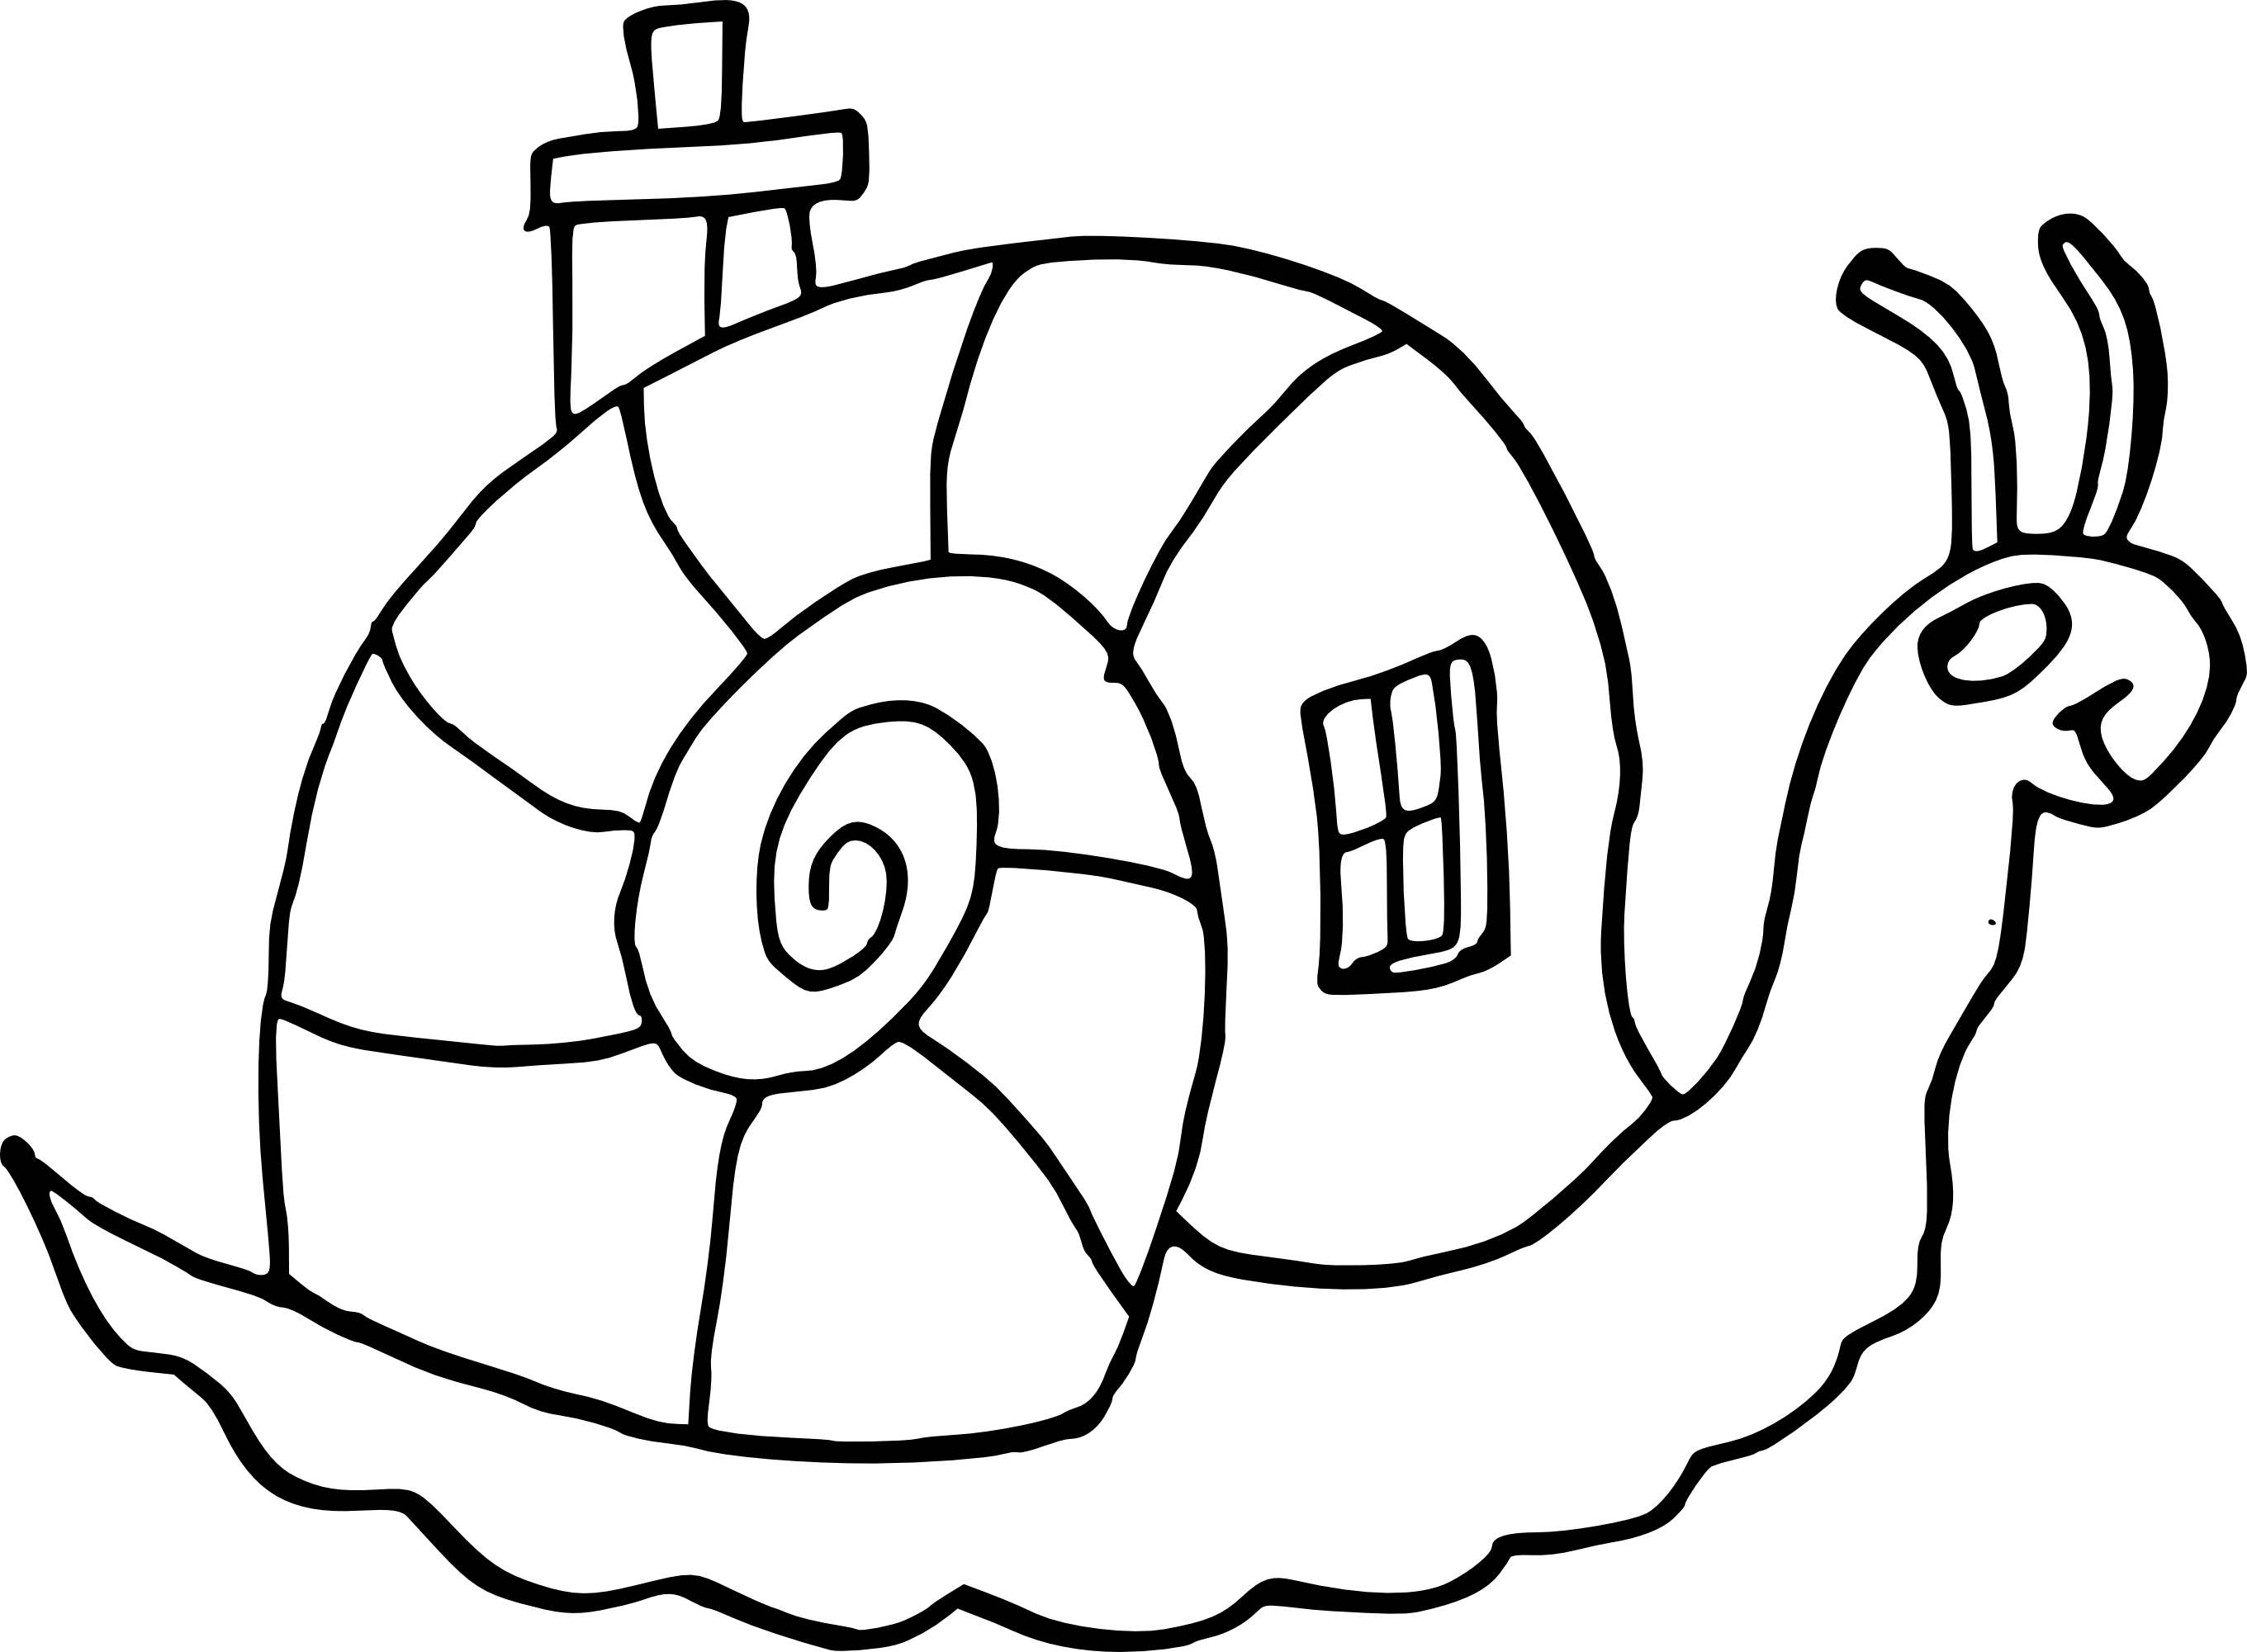 Coloriage Escargot Maison à Imprimer